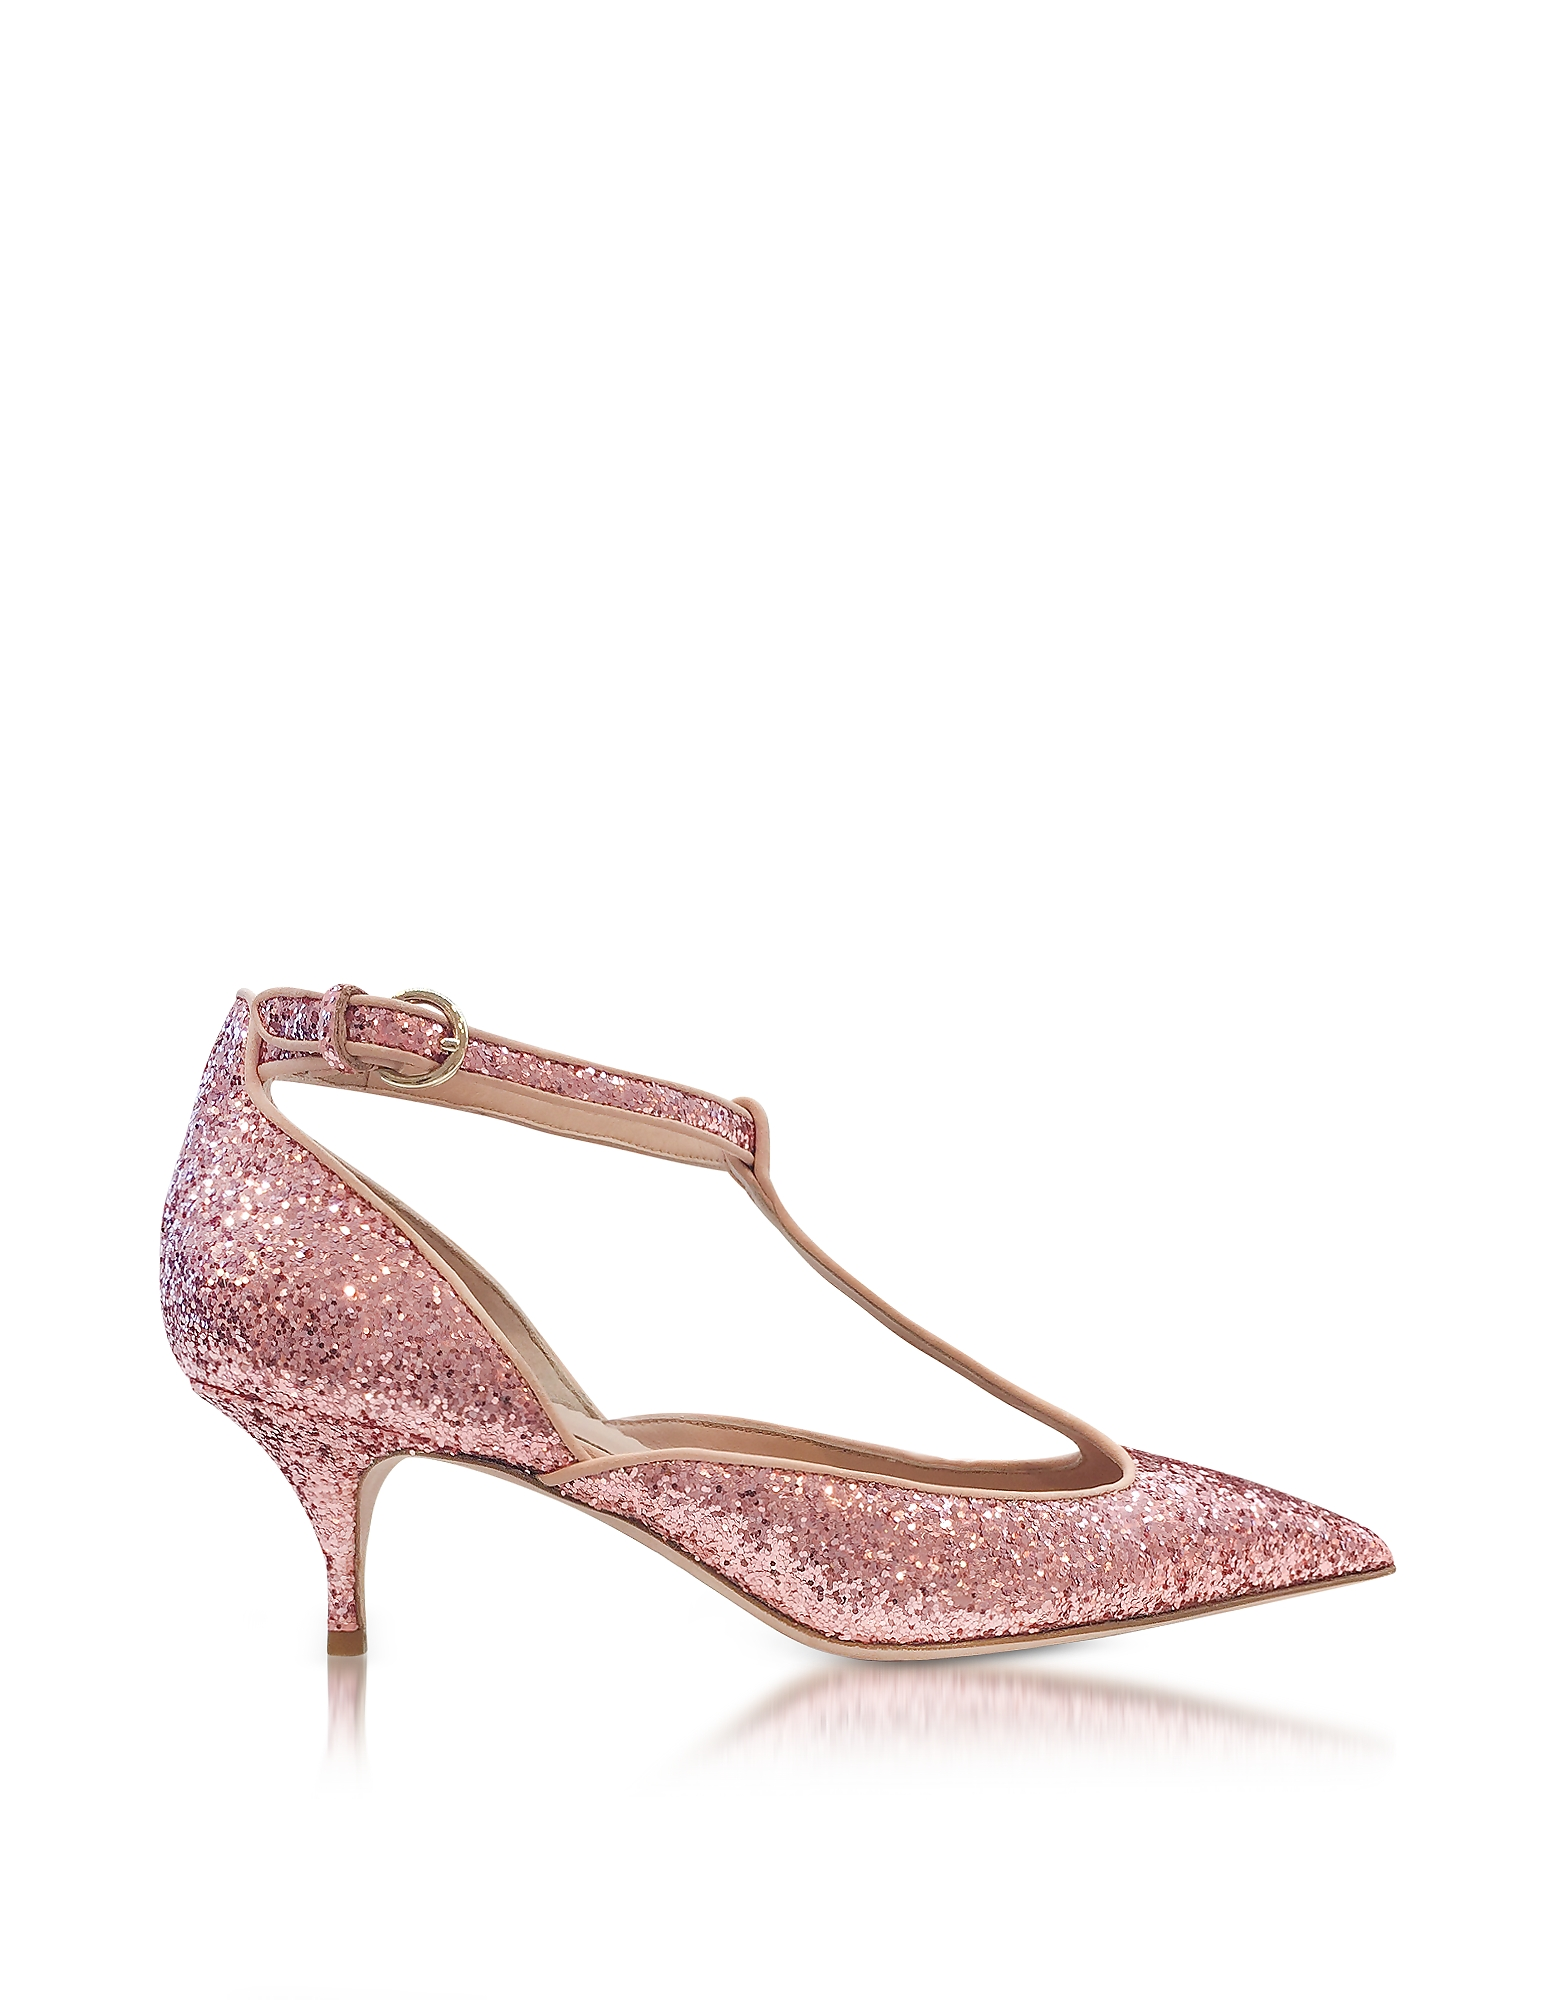 RED Valentino Shoes, Cammeo Glitter and Nude Leather Kitten Heel Pumps